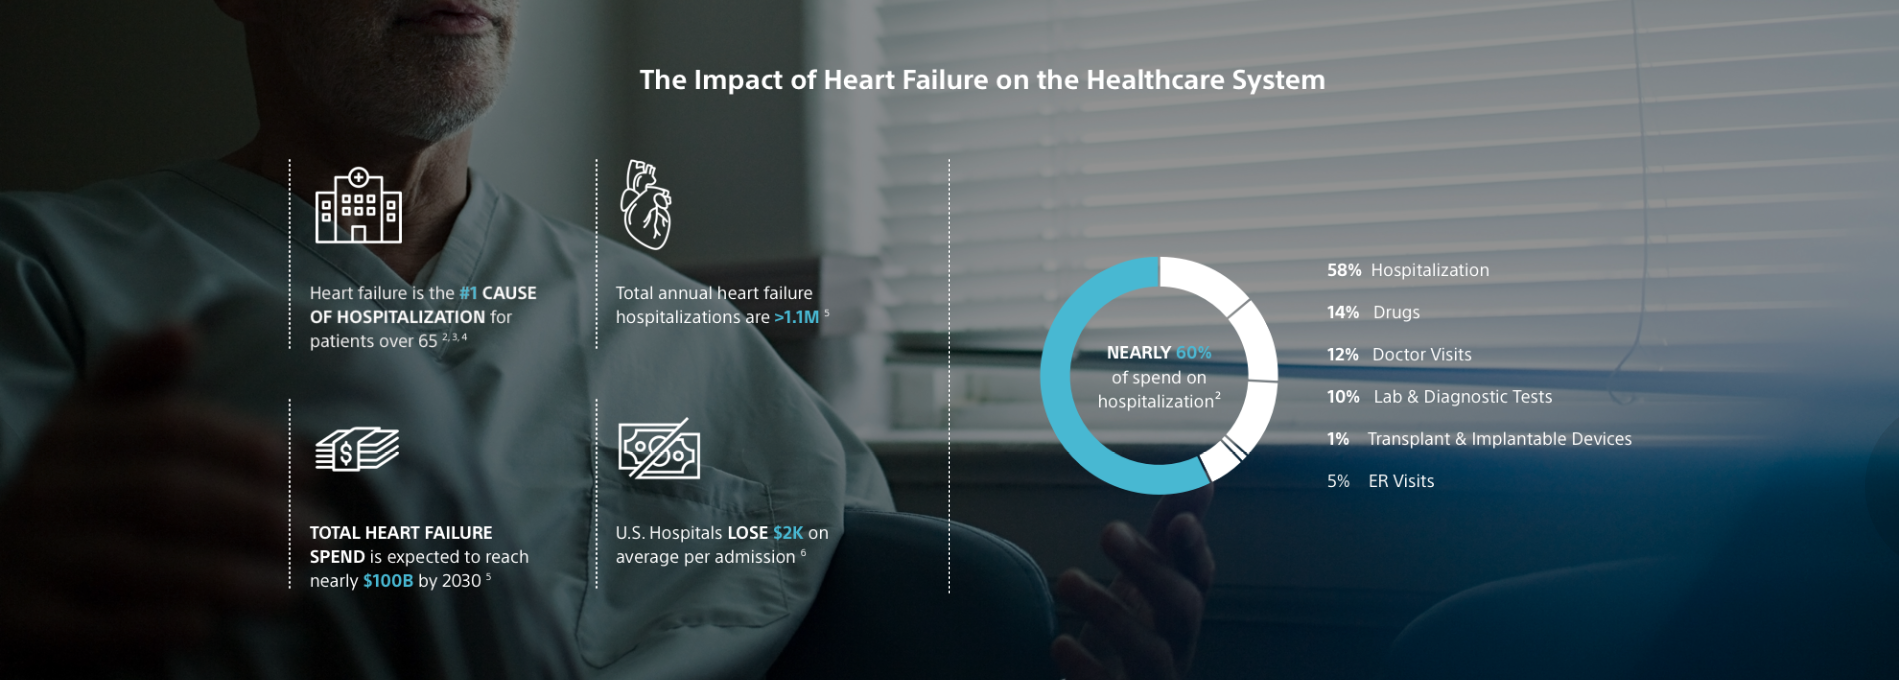 The Impact of Heart Failure on the Healthcare System